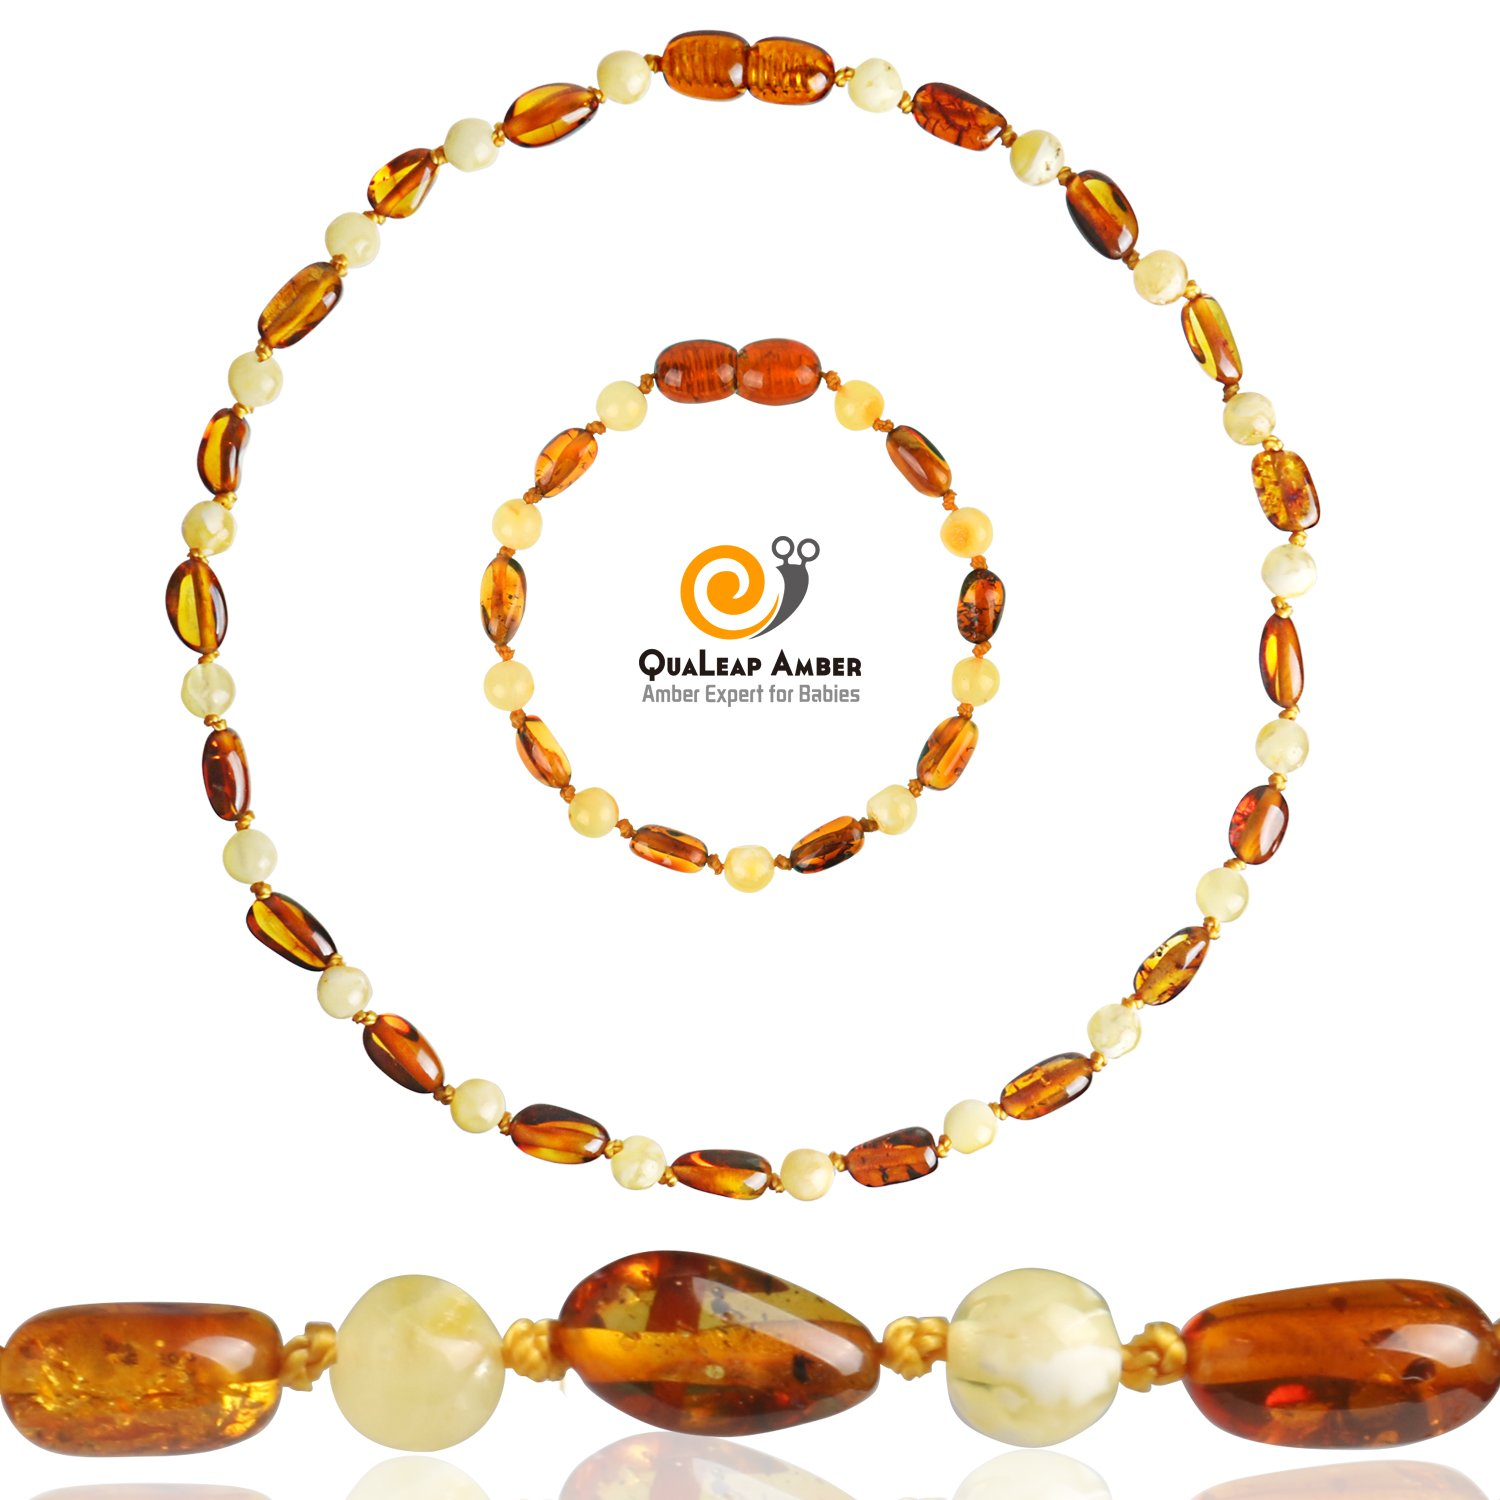 Baltic Amber Teething Necklace + Amber Teething Anklet Set for Baby, 100% Authentic Amber Necklace & Amber Teething Bracelet for Infant & Toddler (Unisex – Cognac/Milk - 12.5 Inches / 5.5 Inches)